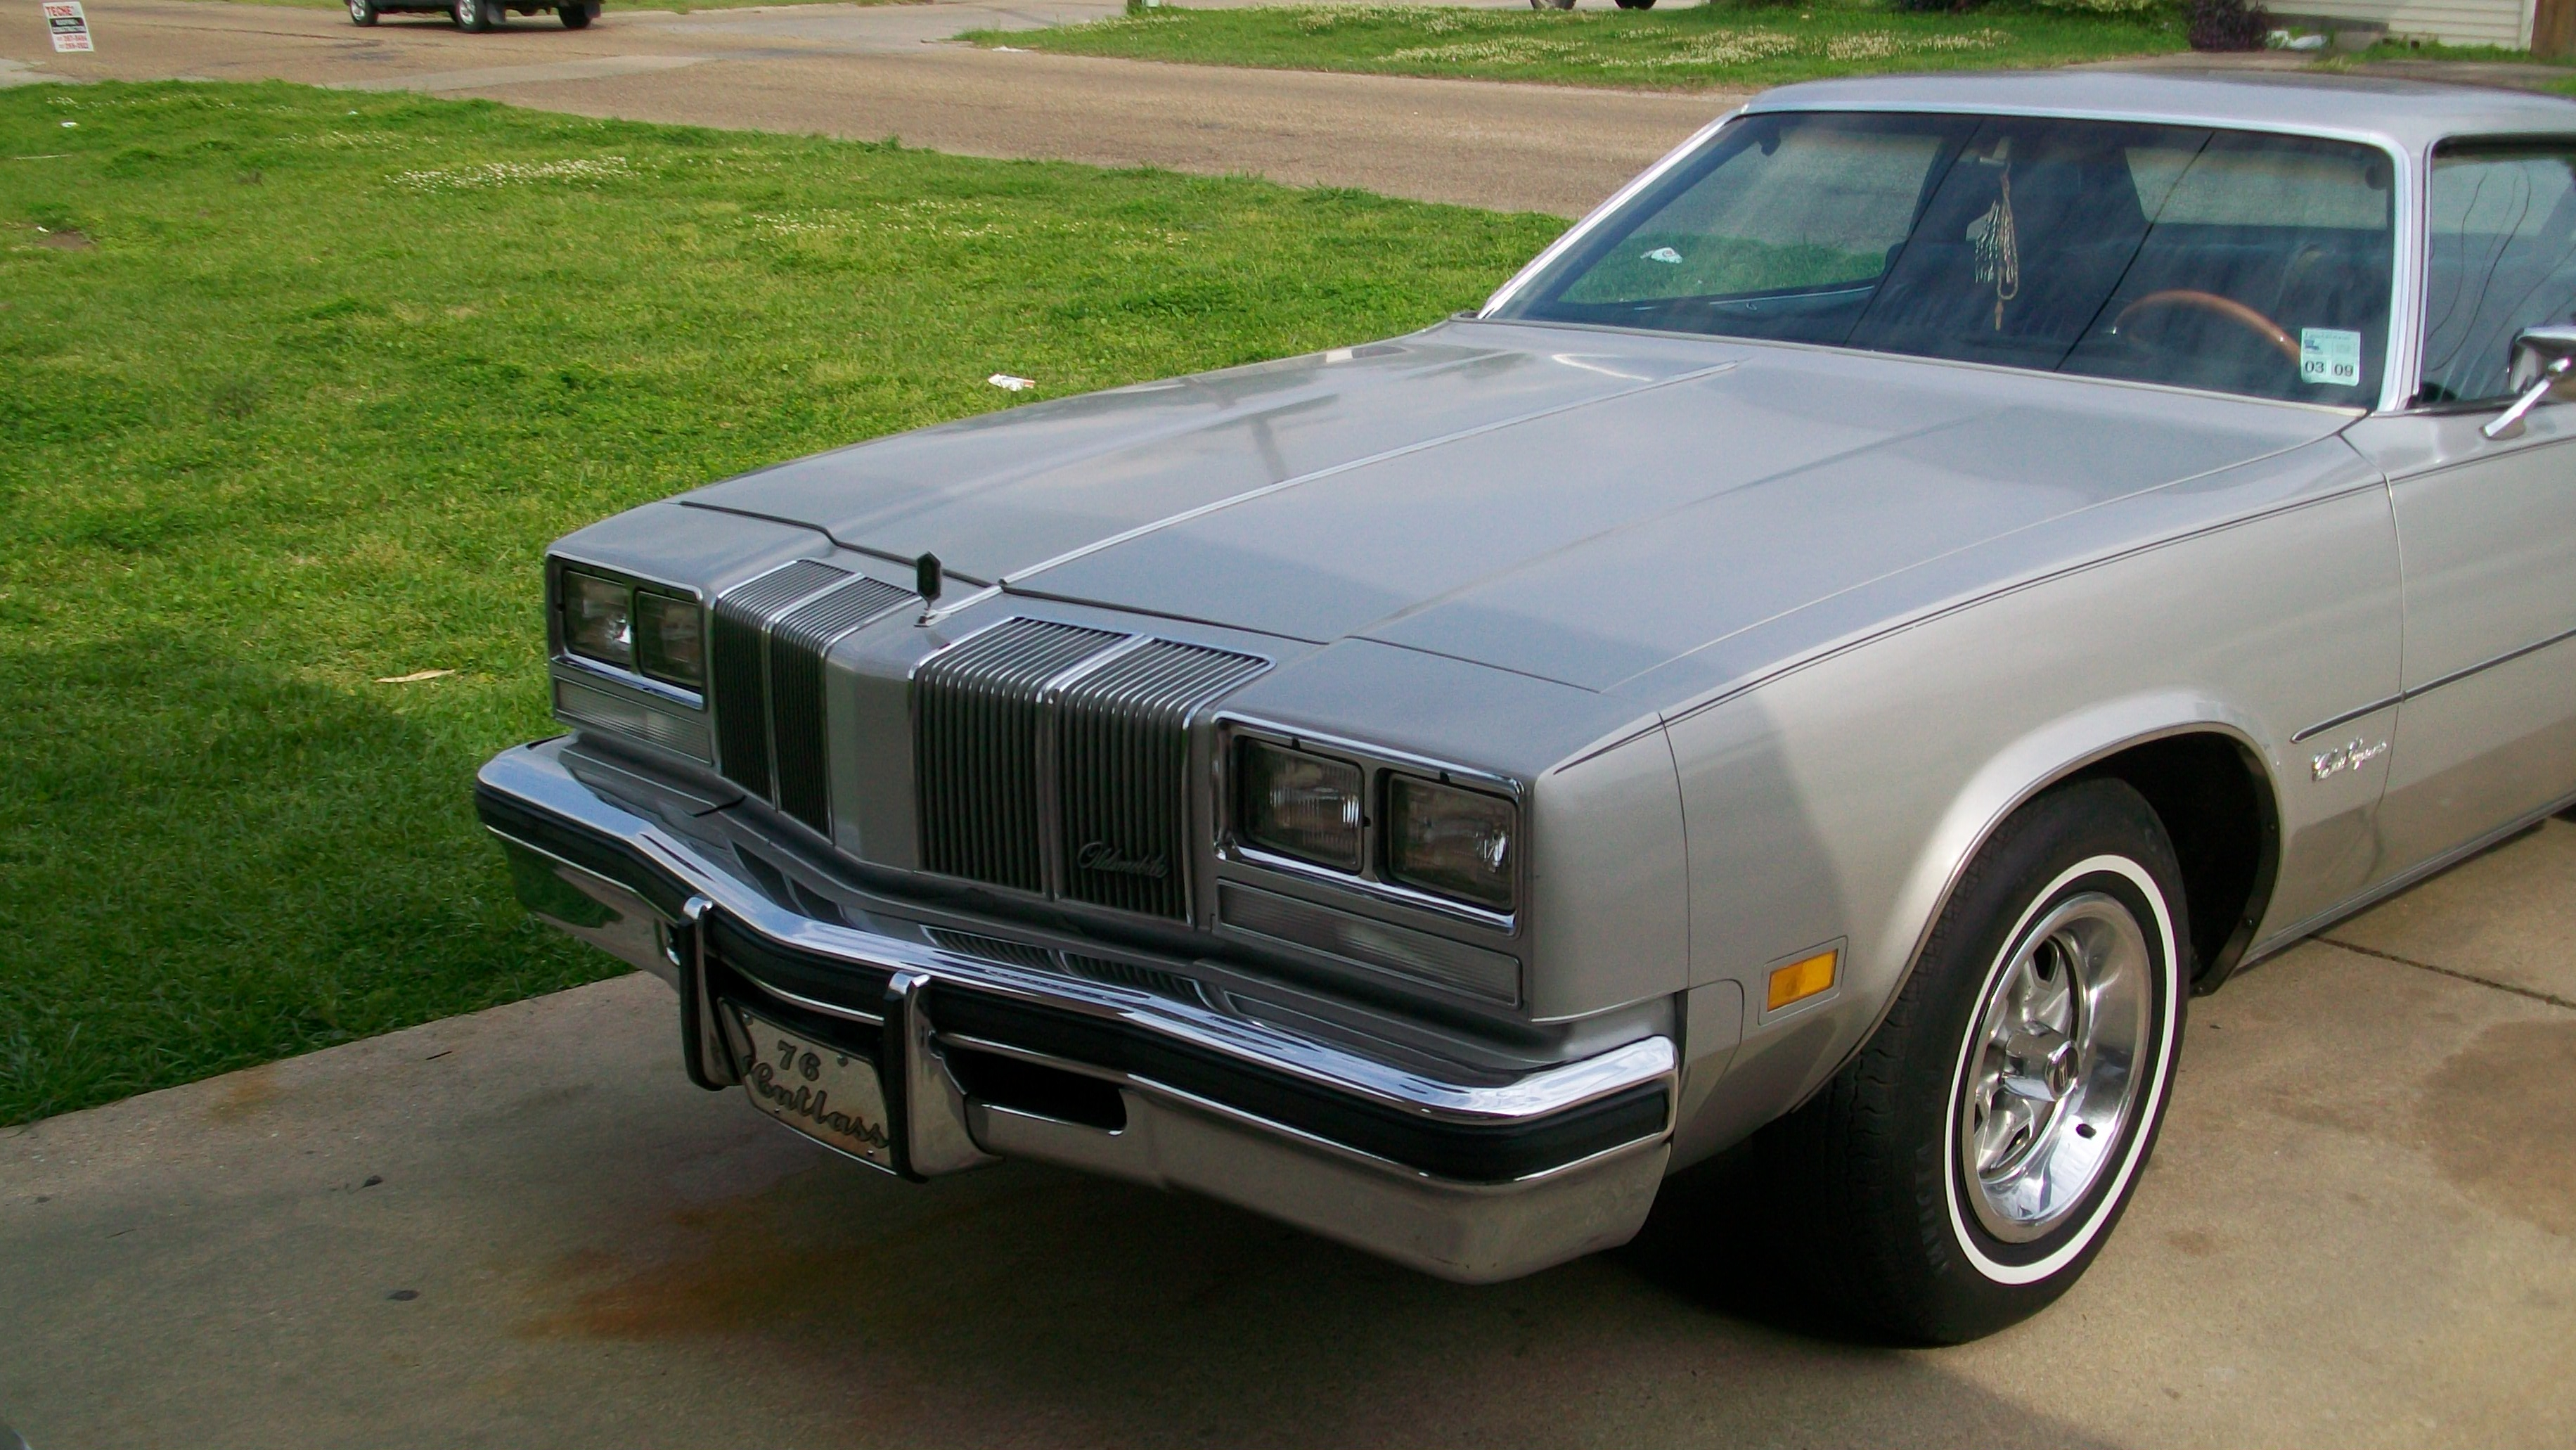 Geezy76 1976 Oldsmobile Cutlass Supreme 14197618